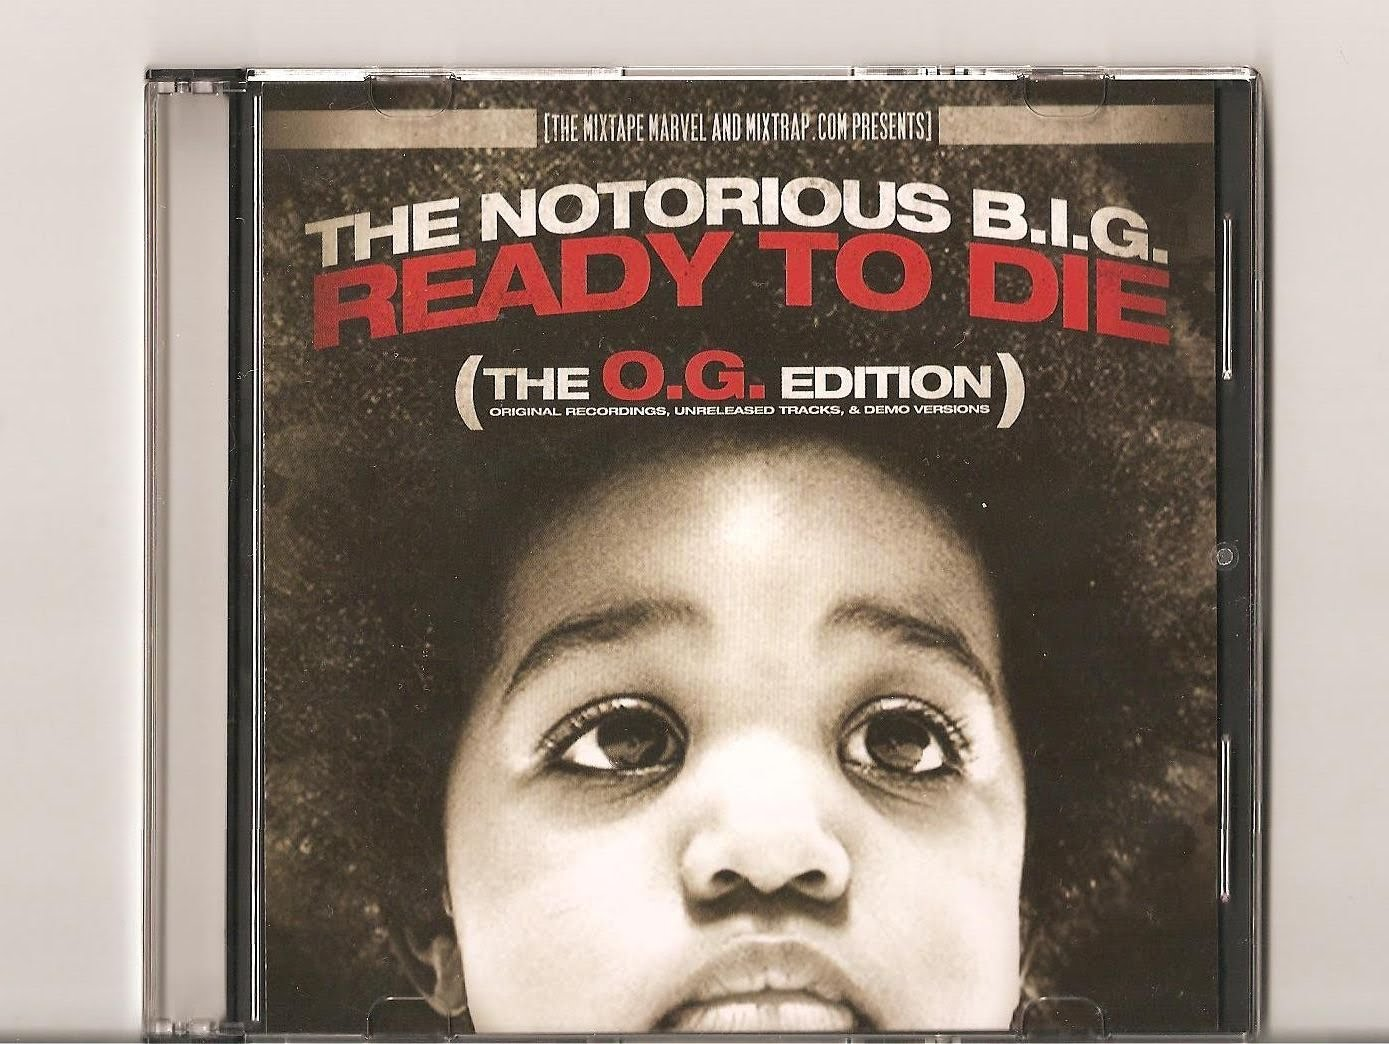 Top Five The Notorious B i g  Ready To Die Songs Download